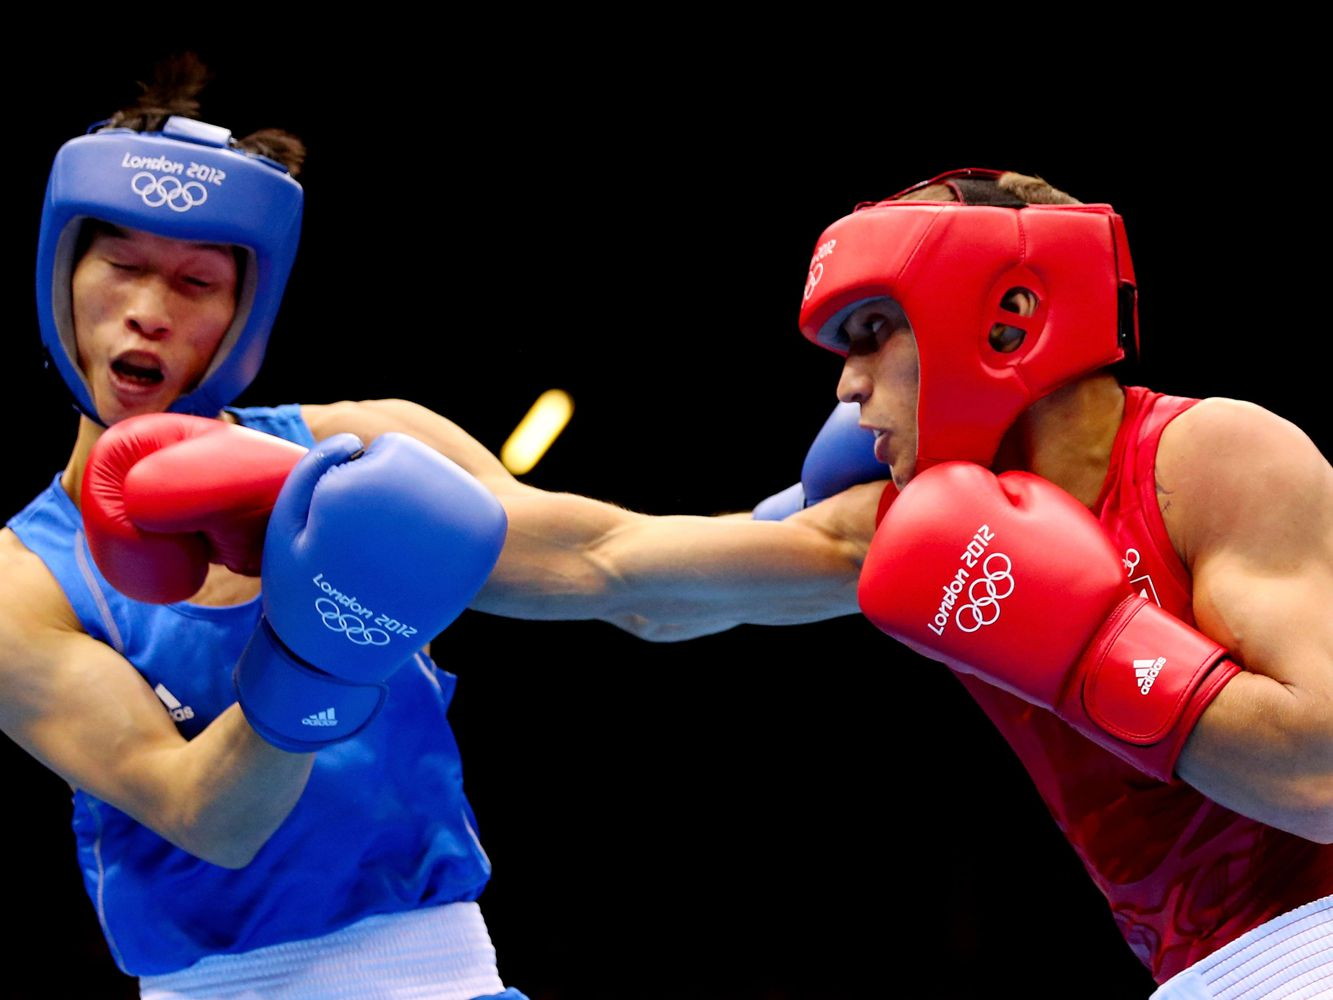 Boxing Training Offers Great Opportunities For Aerobic Exercise